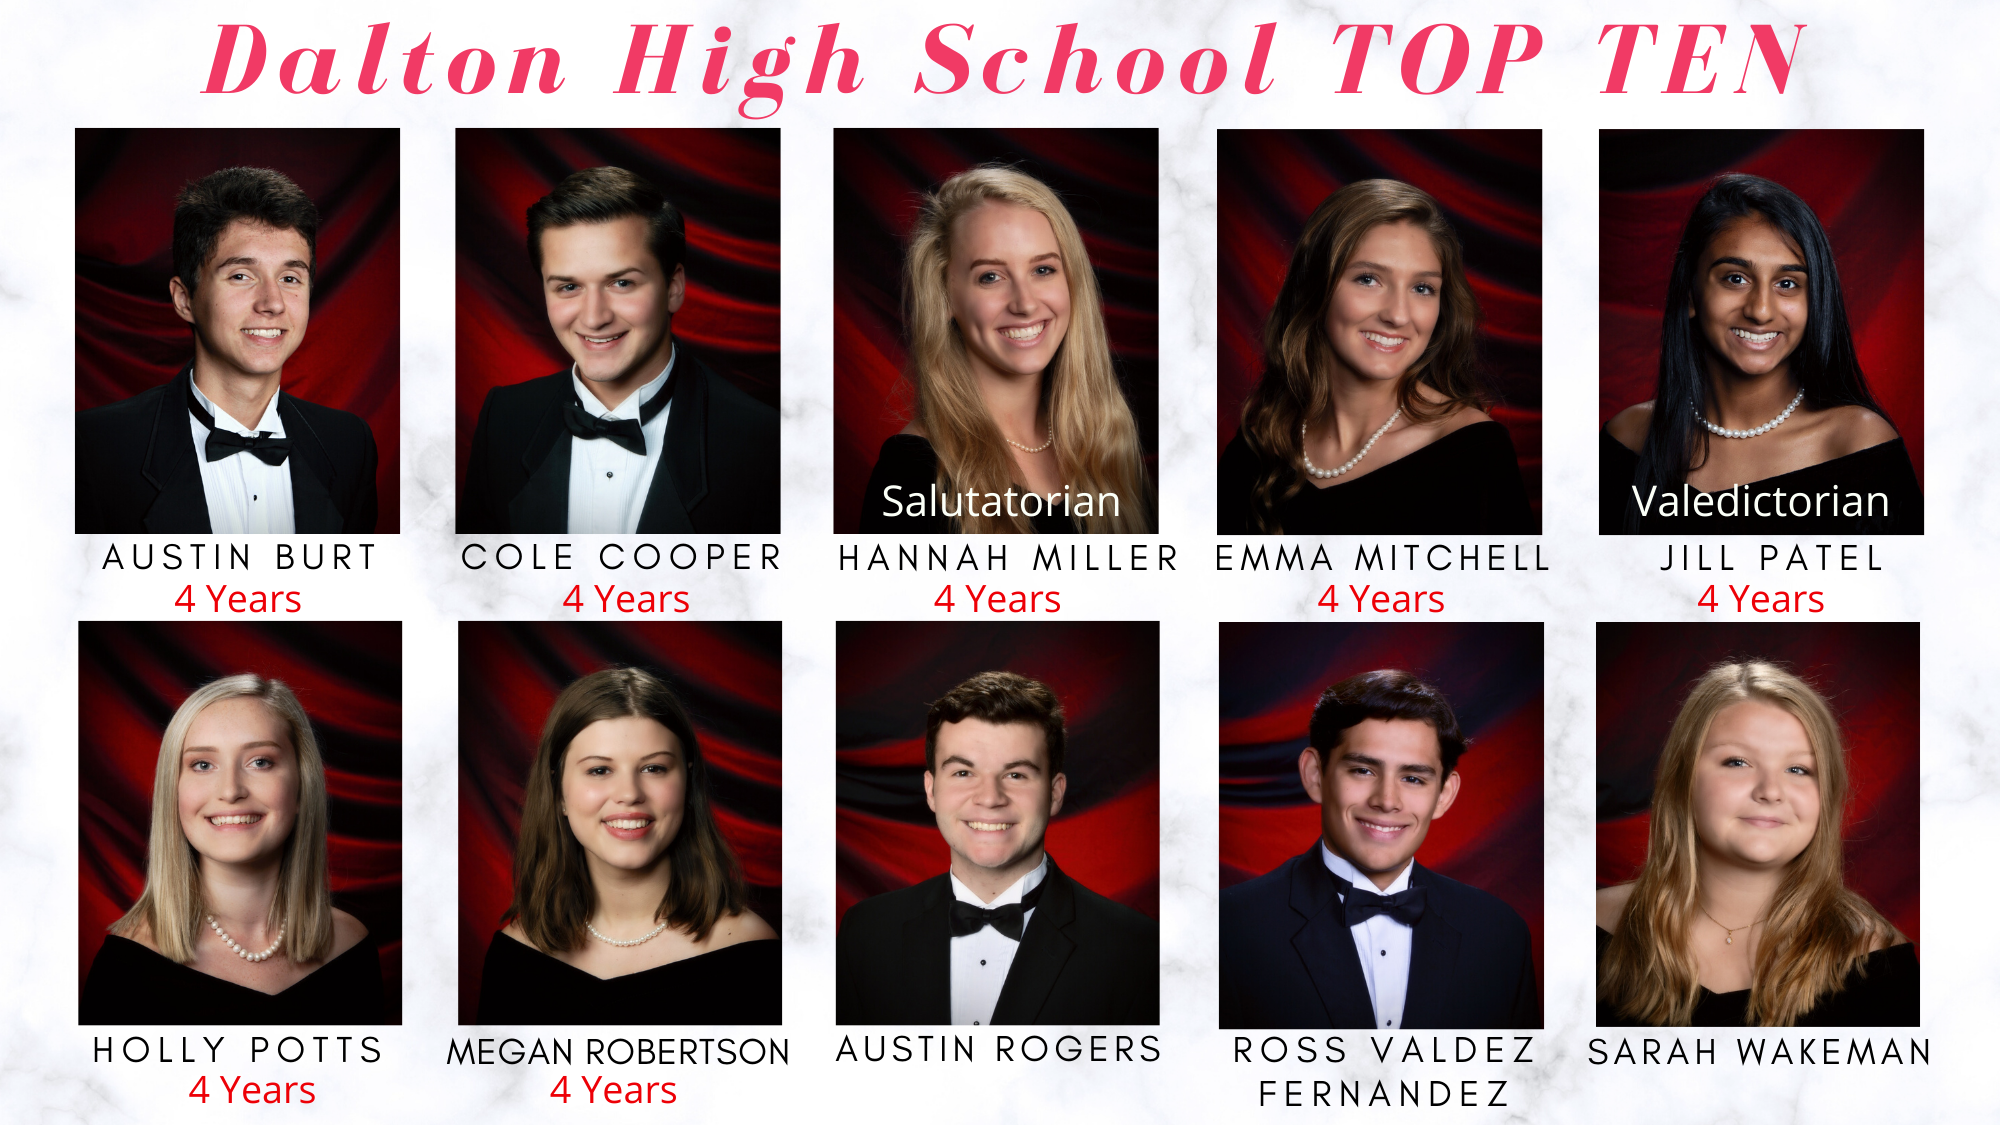 DHS Top Ten students of the Class of 2020